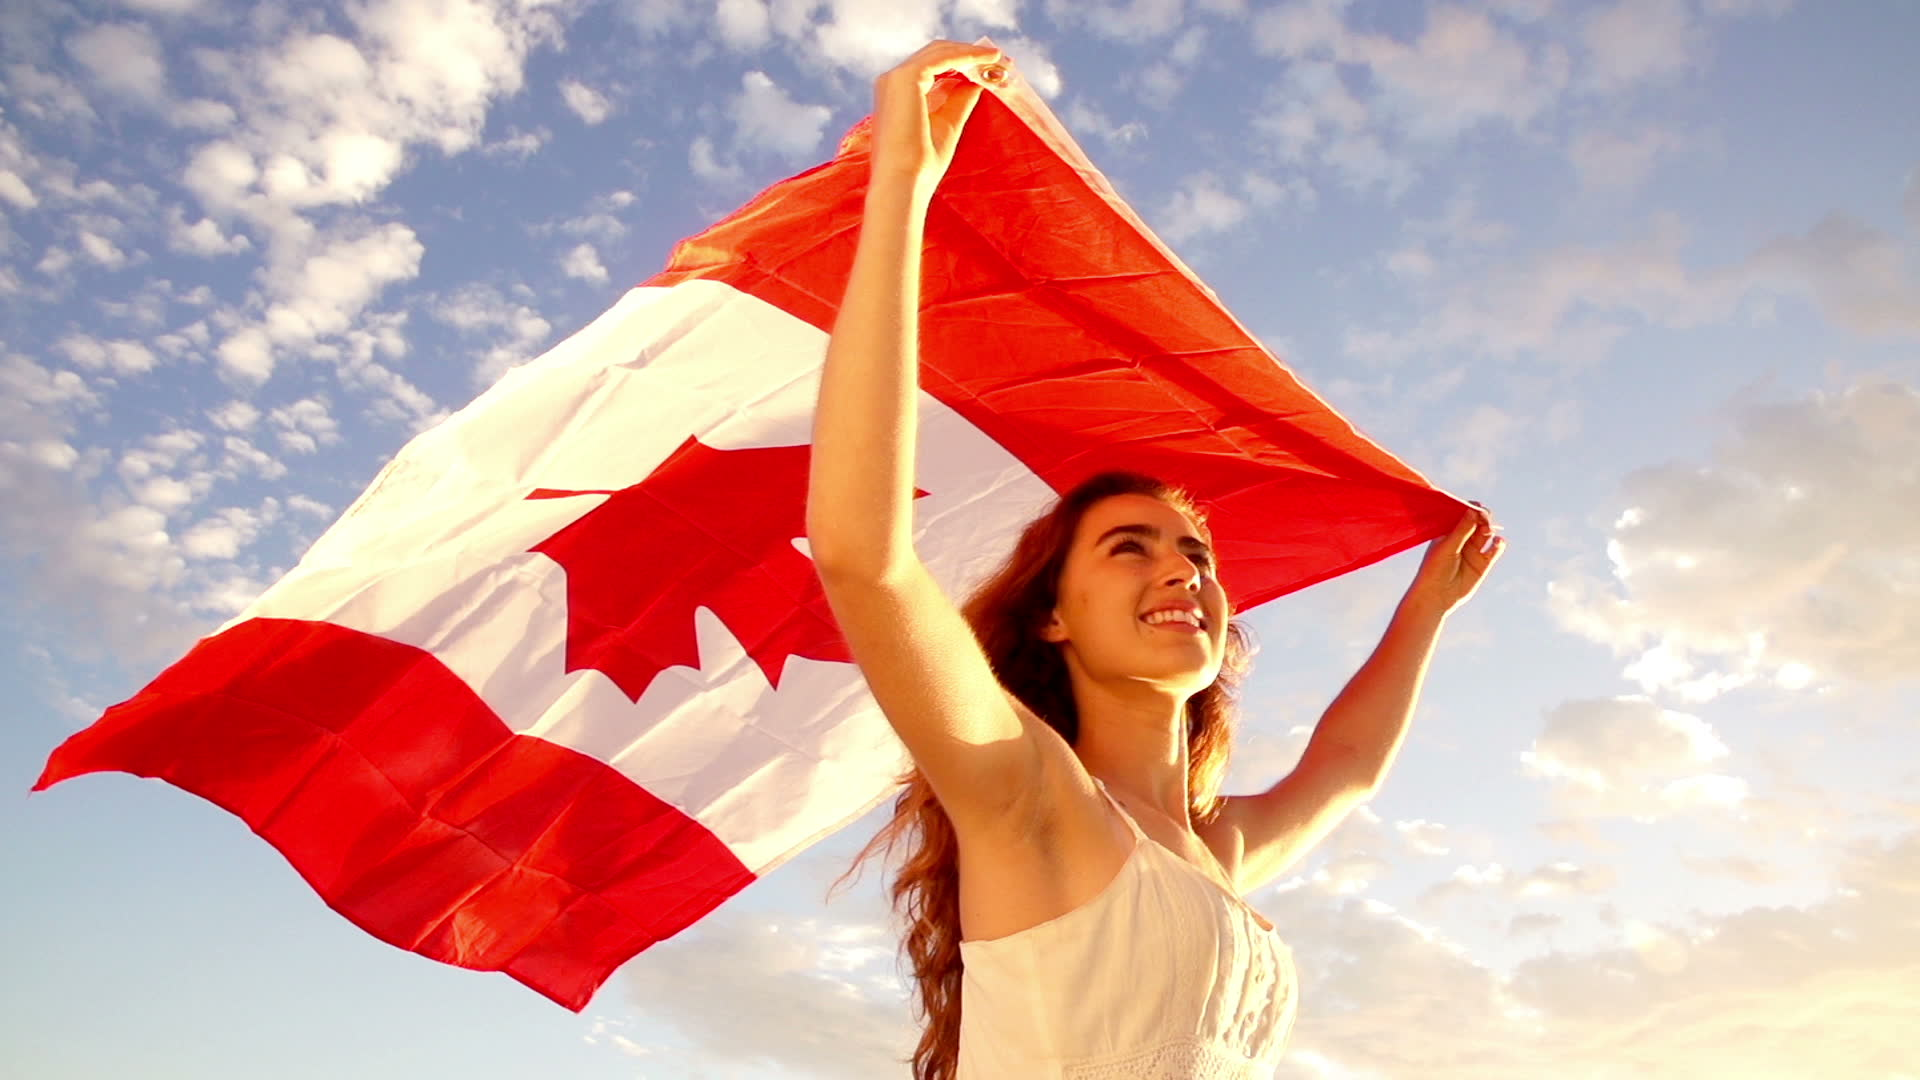 6 Things You May Not Know About The Canadian Flag